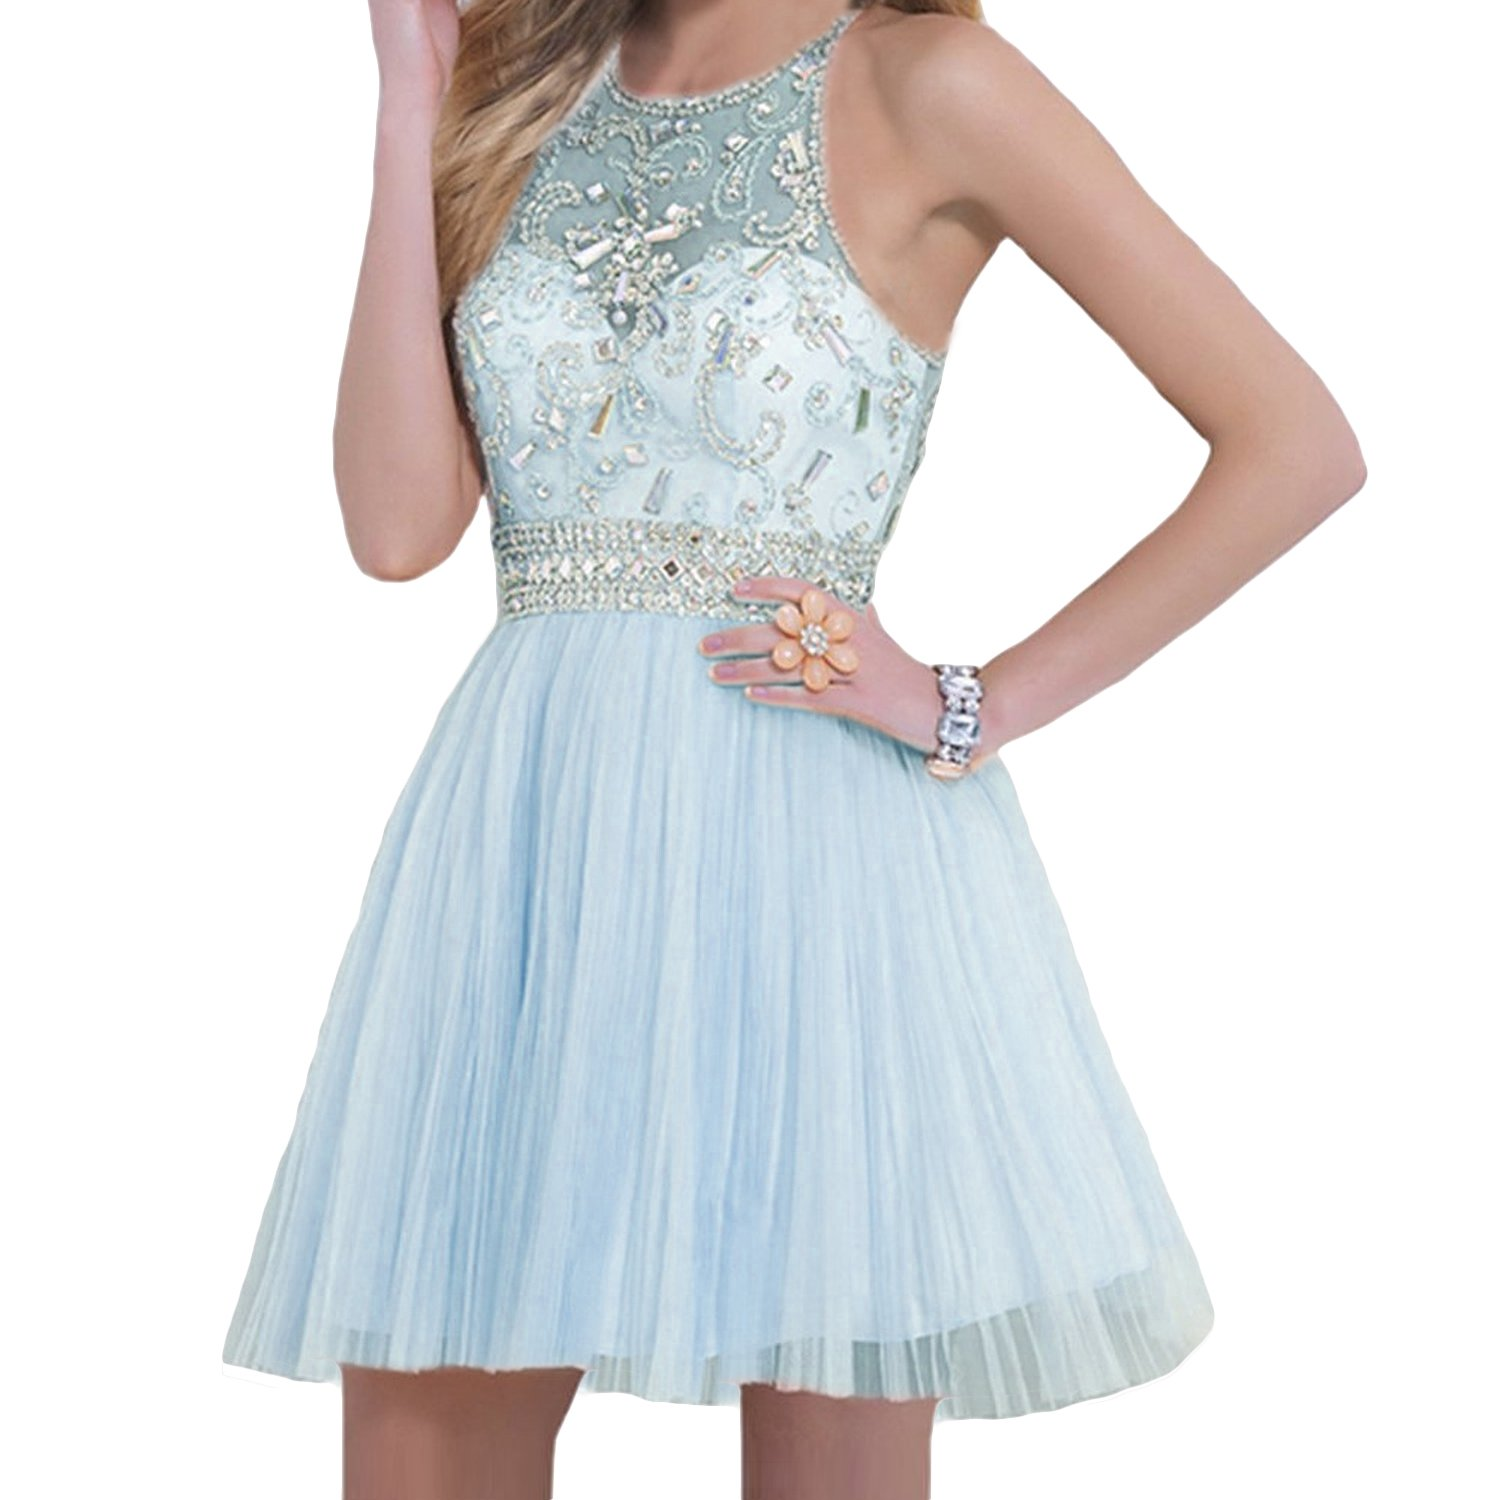 8th Grade Prom Short Prom Dresses Amazoncom